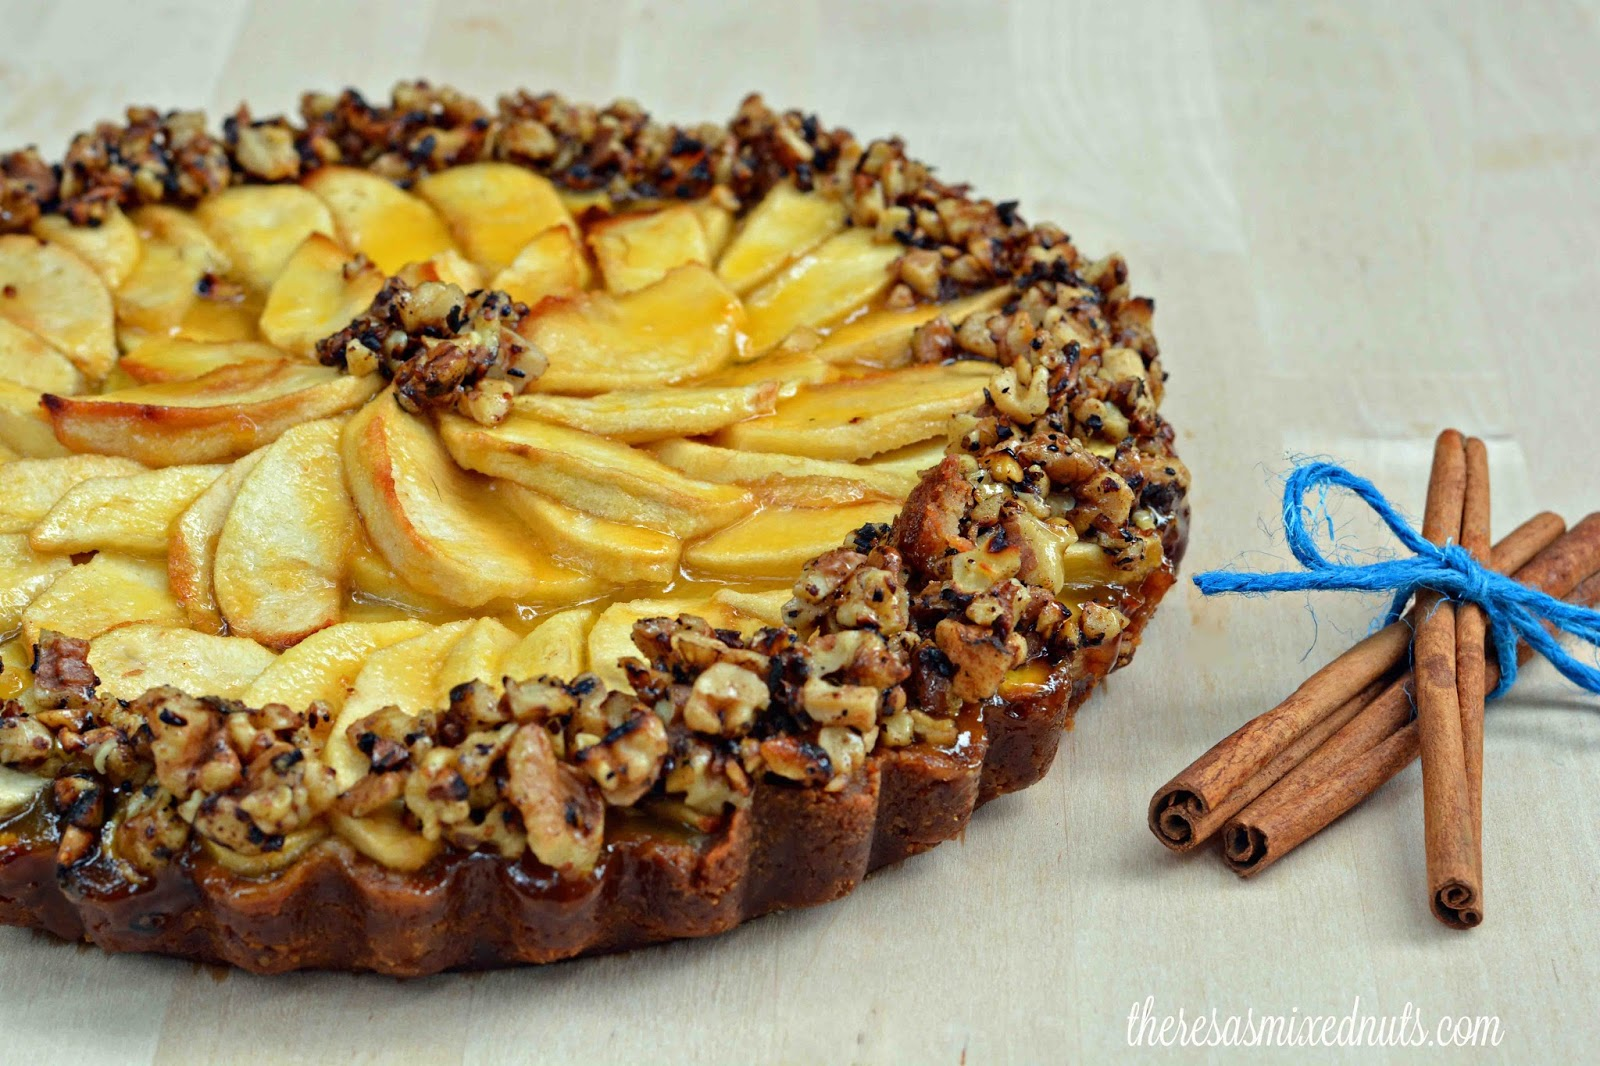 ... Mixed Nuts: Celebrate Labor Day With An Apple & Honey Walnut Tart